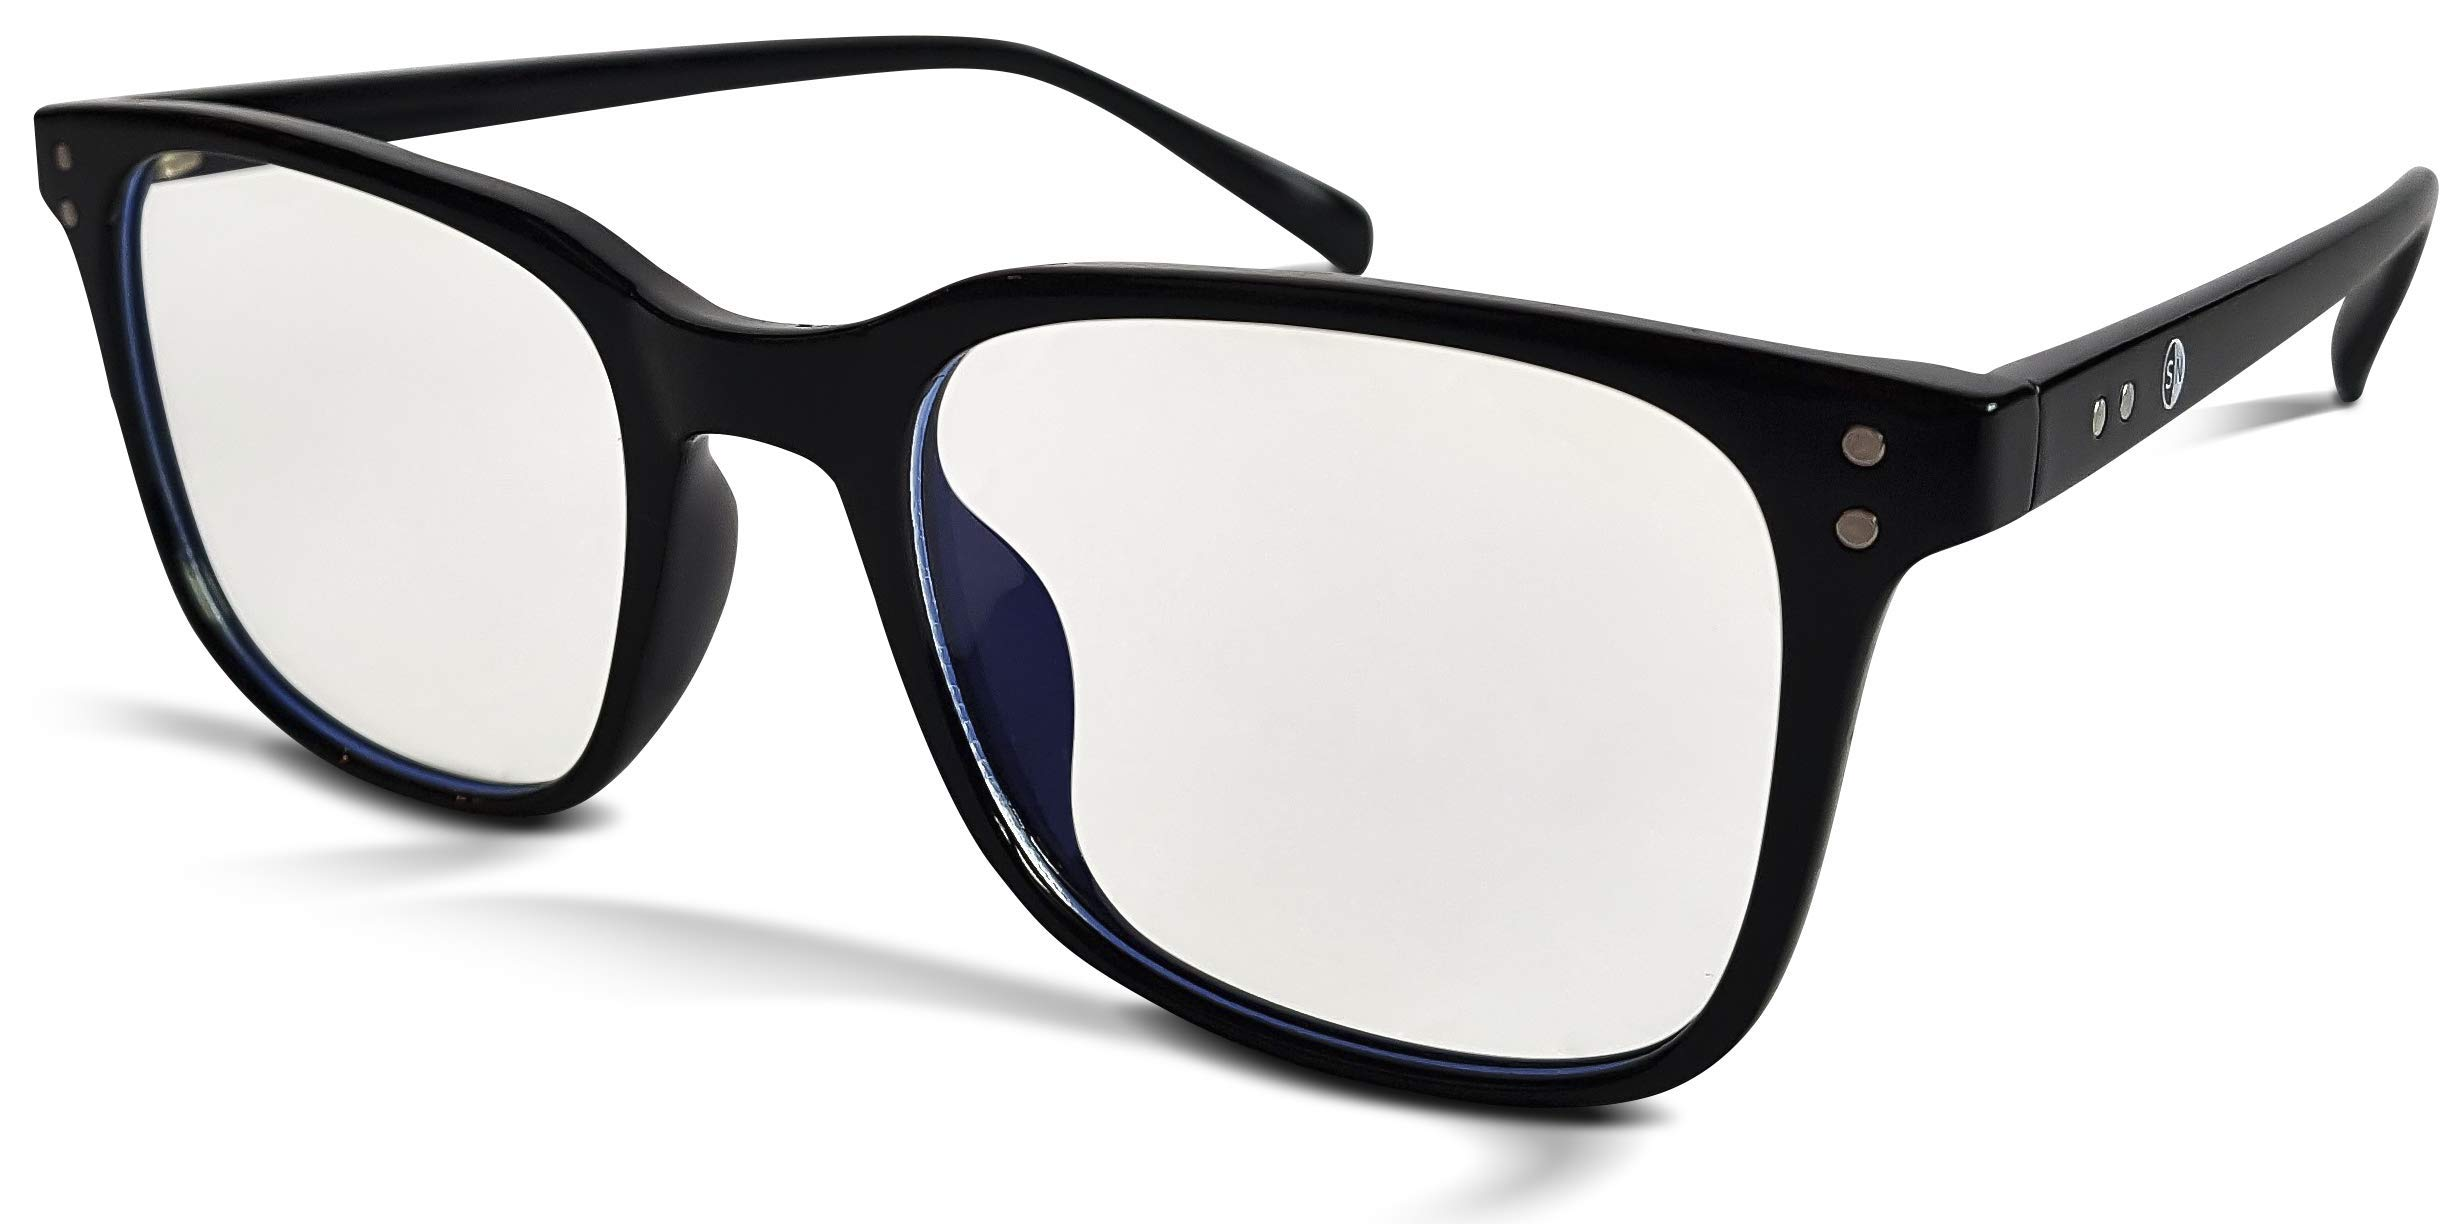 Sun Nowa Blue Light Blocking Glasses for Men & Women - Minimizes Eye Strain, Provides Eye Protection, and Filters UV Light - Perfect for Computer, Gaming, Daily Use (Black, 0)